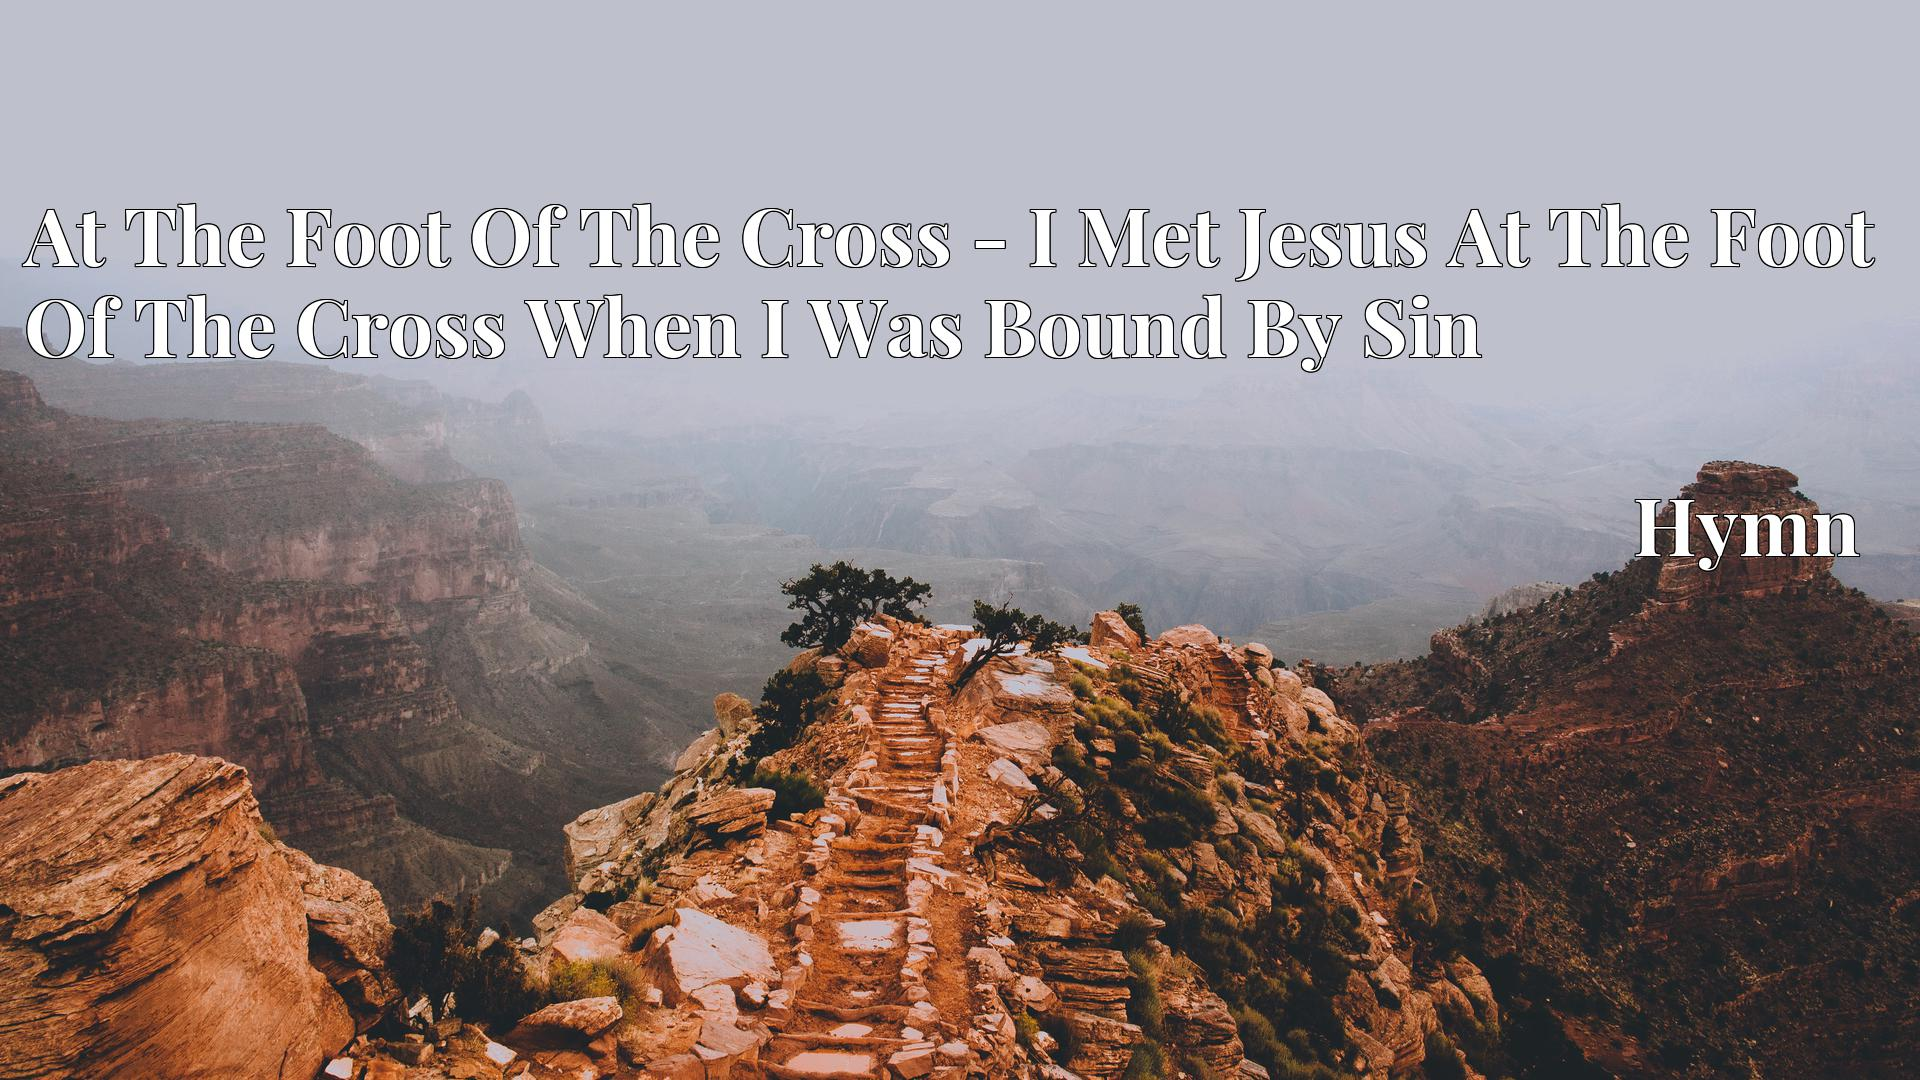 At The Foot Of The Cross - I Met Jesus At The Foot Of The Cross When I Was Bound By Sin - Hymn